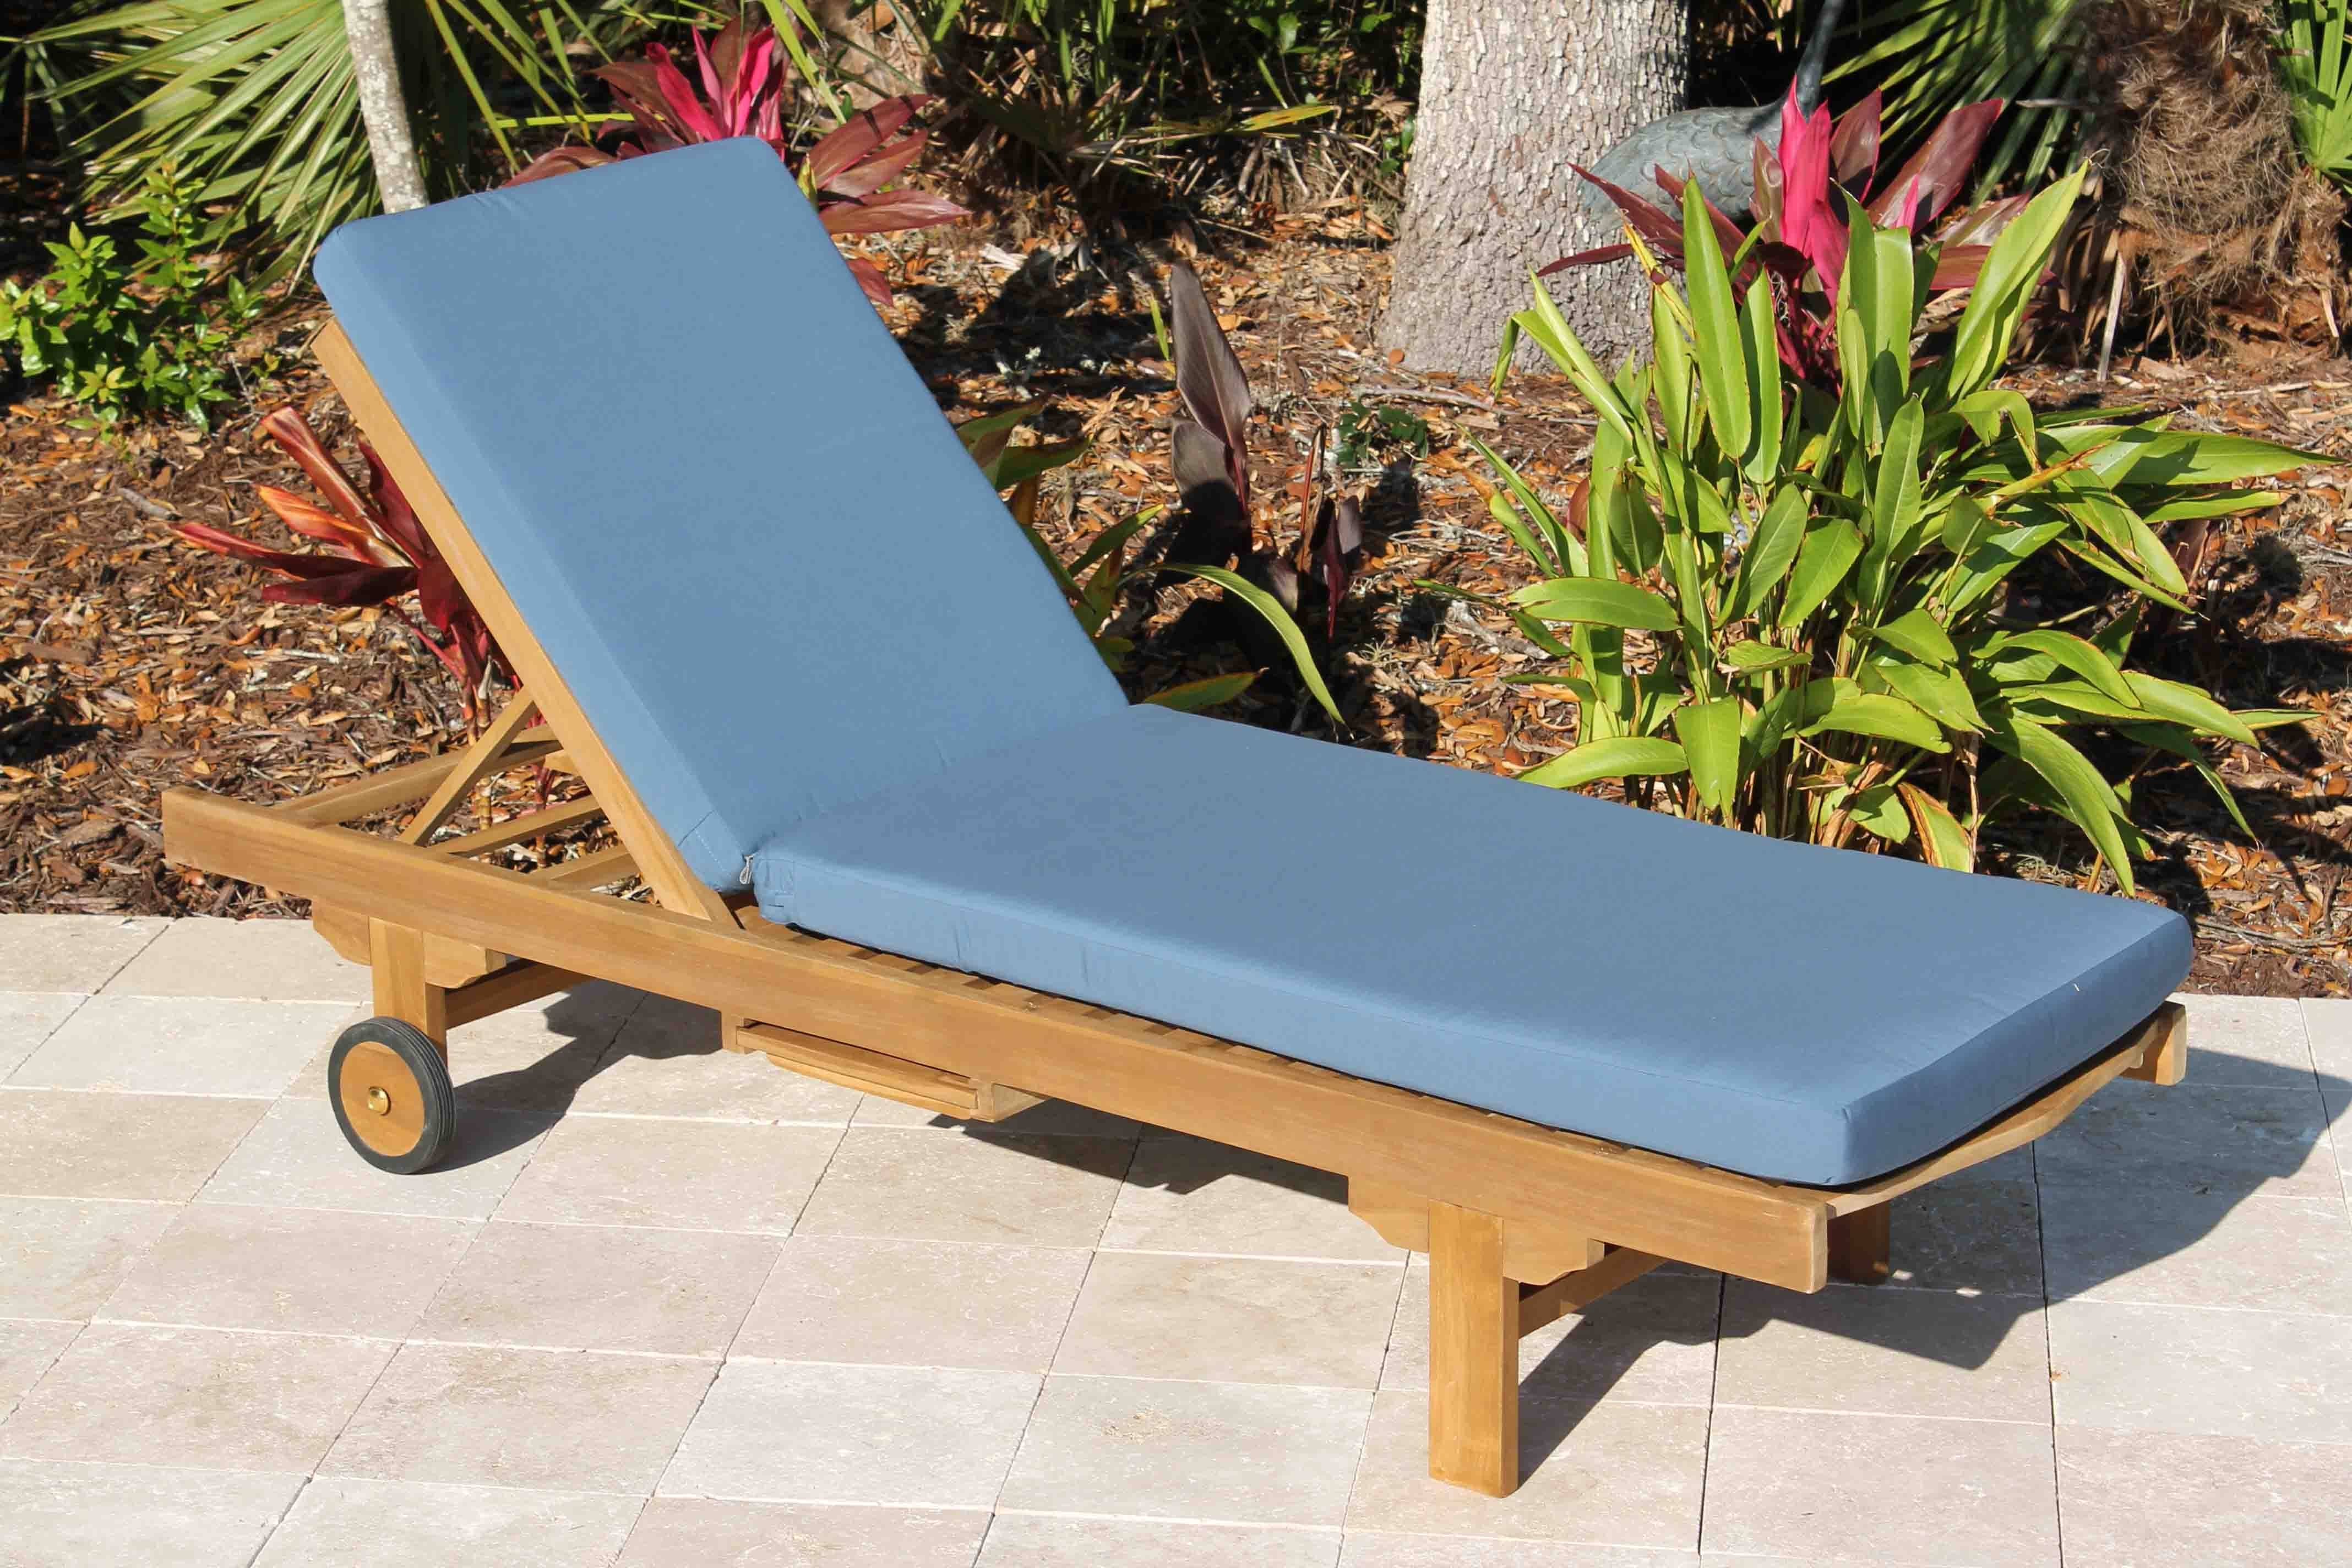 Widely Used Cushion For Chaise Lounge Chair • Lounge Chairs Ideas Regarding Extra Wide Outdoor Chaise Lounge Chairs (View 15 of 15)